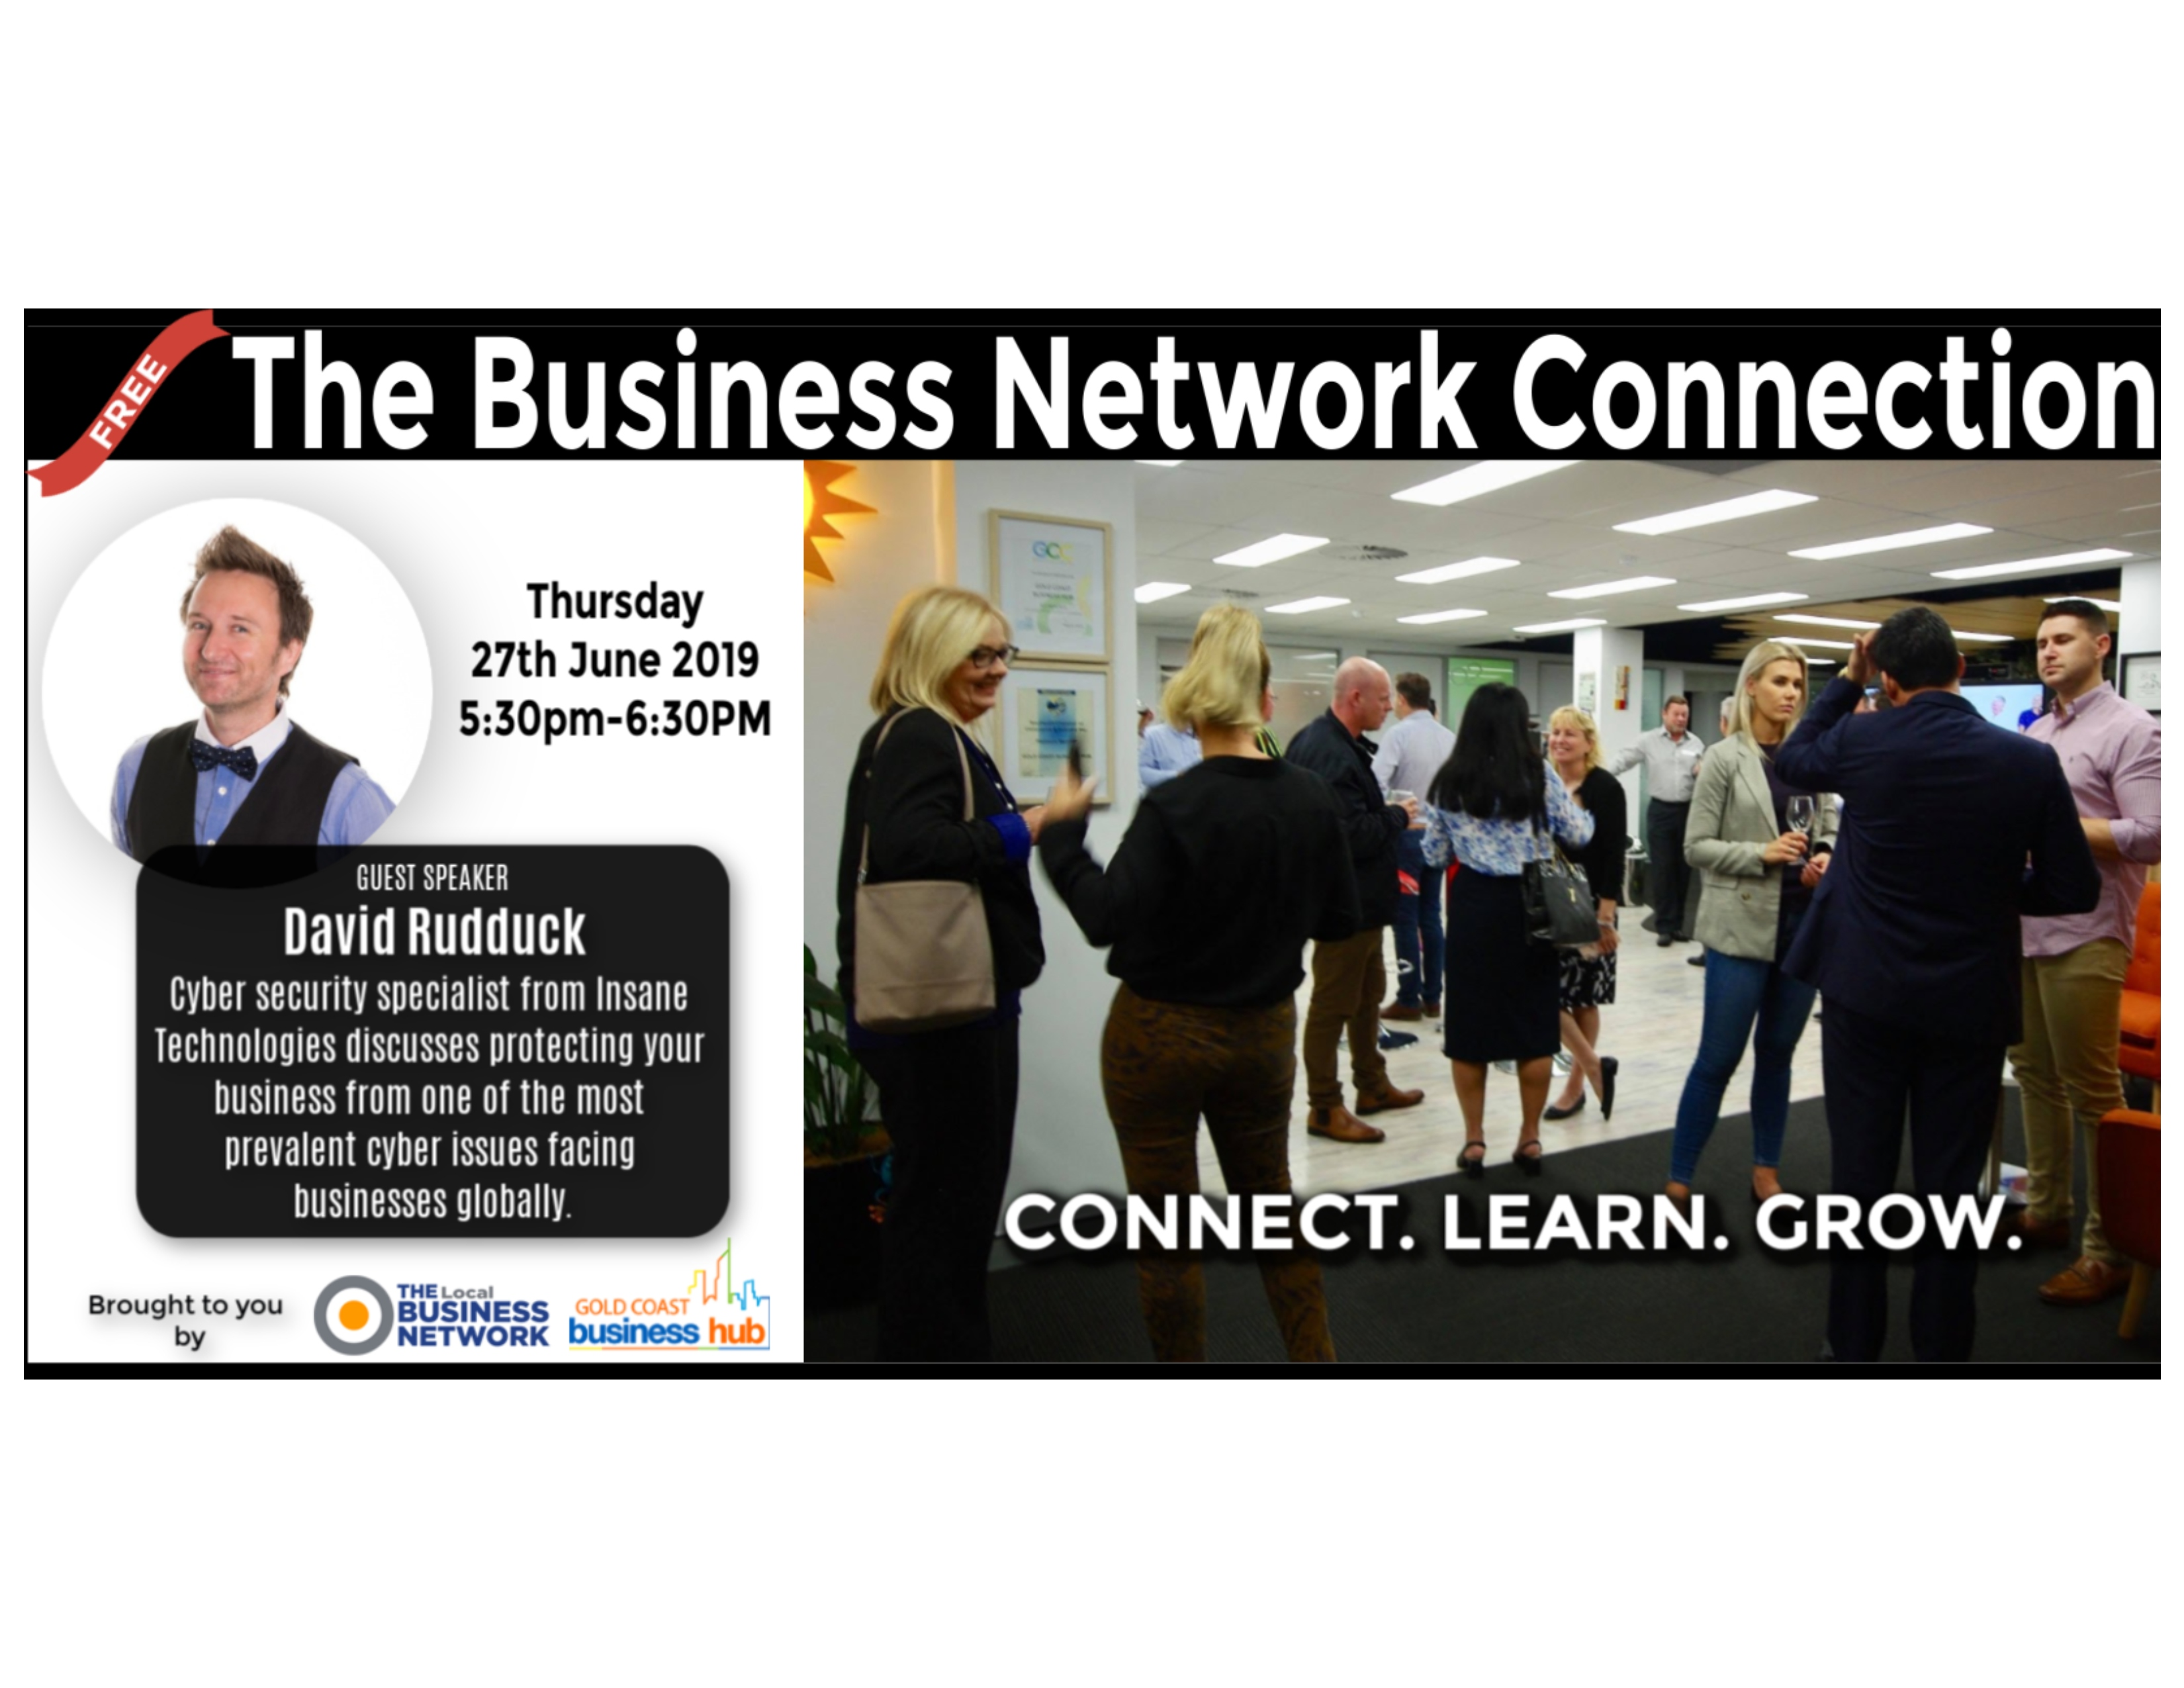 The Business Network Connection June 2019 - blog post image